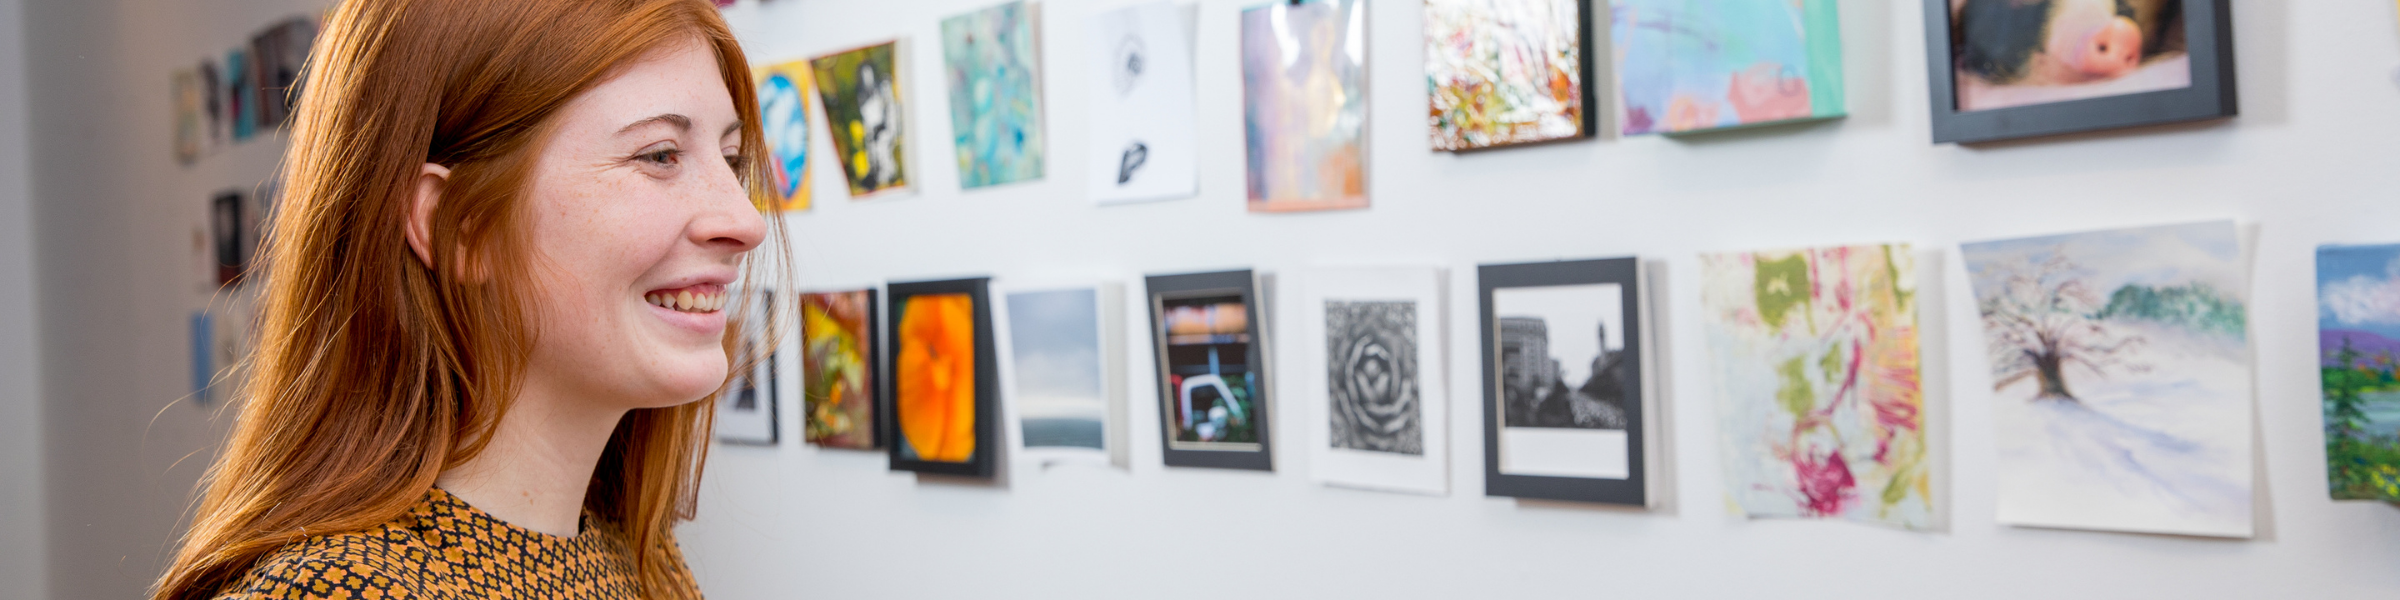 Woman looking at small paintings mounted on wall